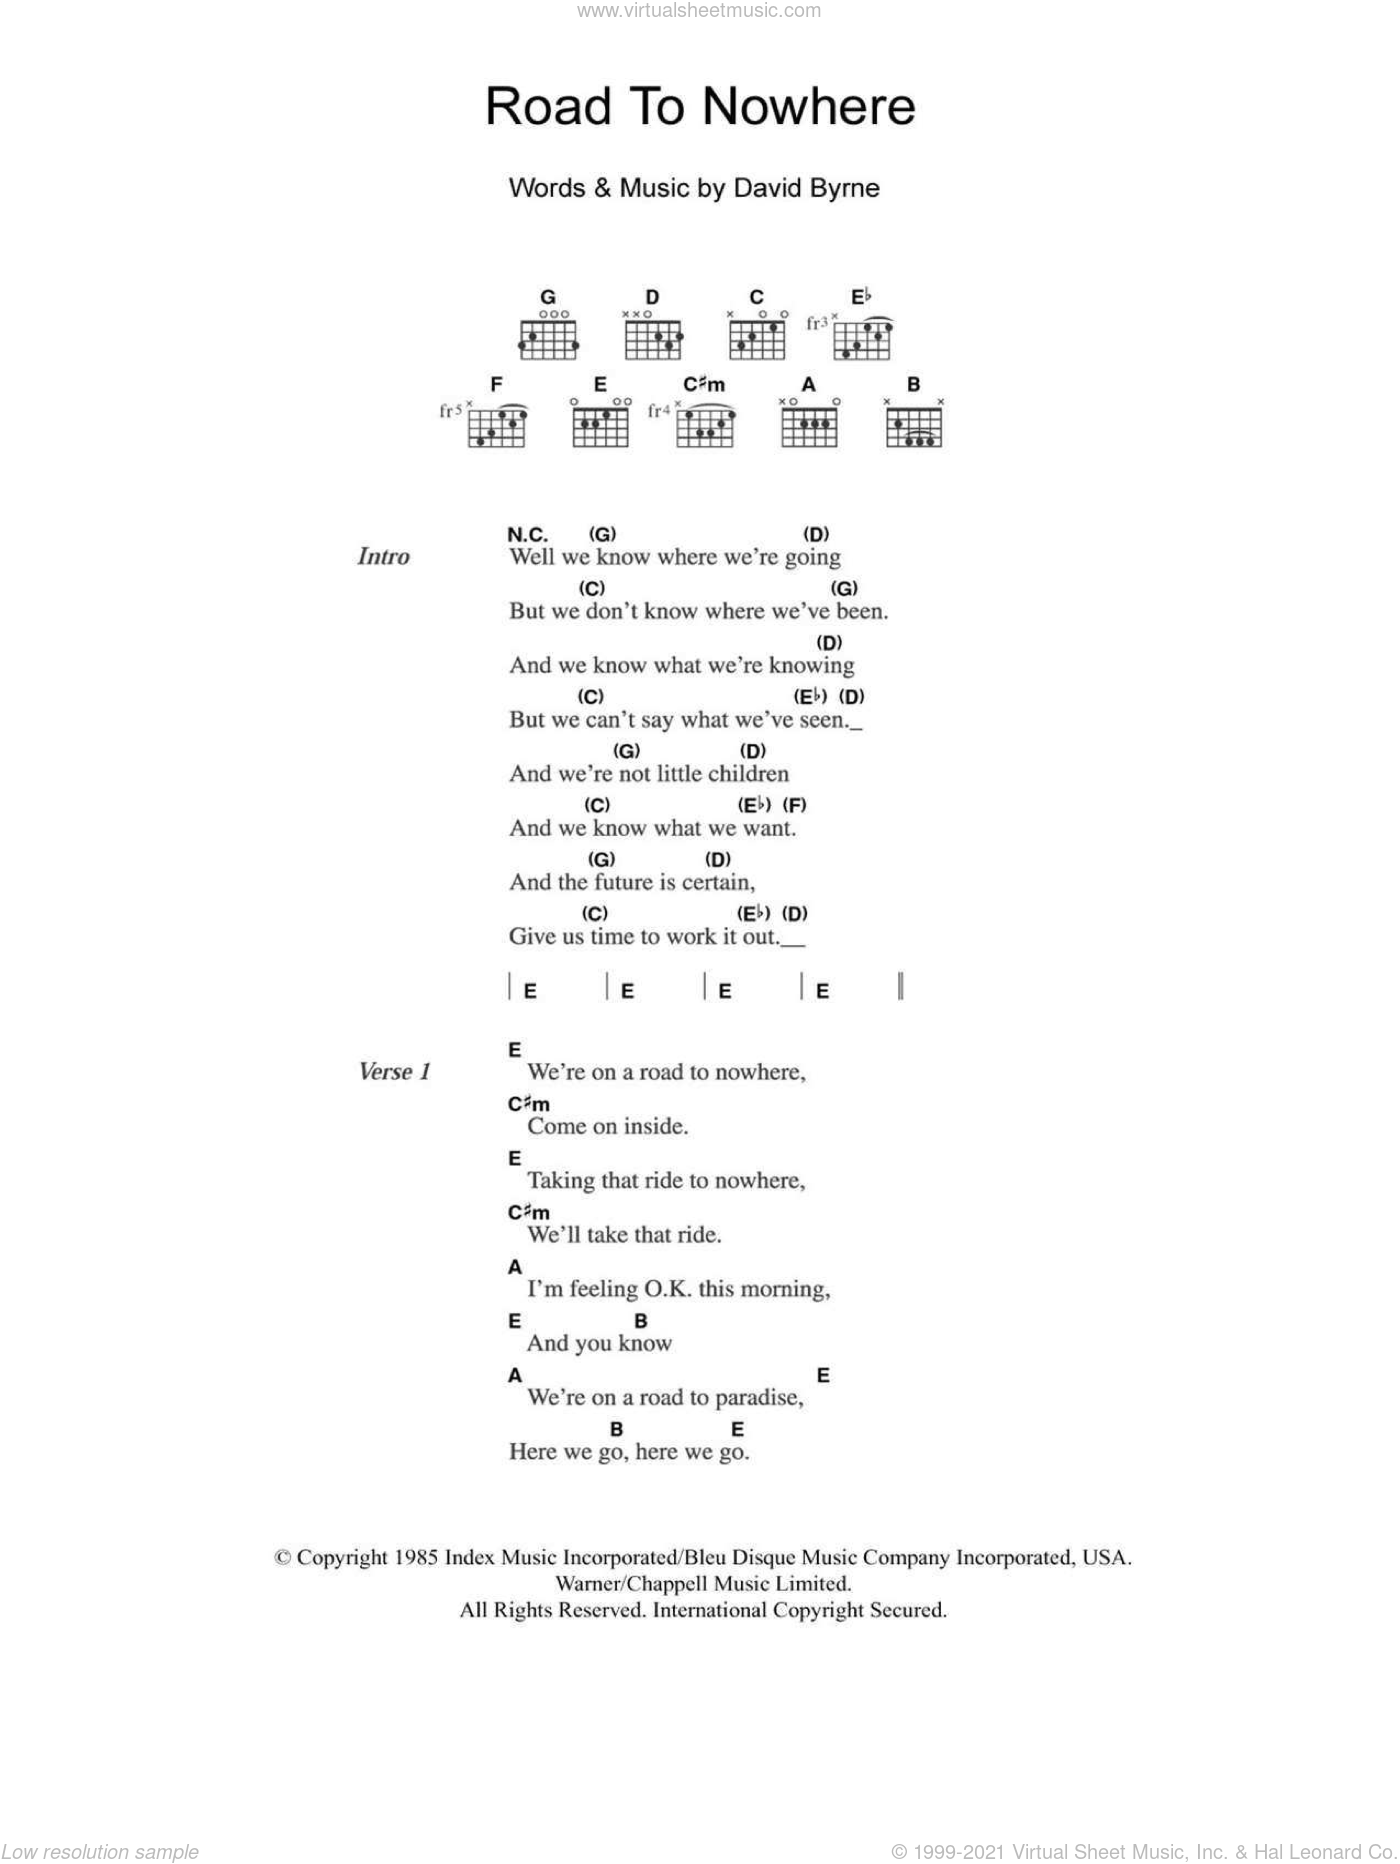 Road To Nowhere sheet music for guitar (chords, lyrics, melody) by David Byrne